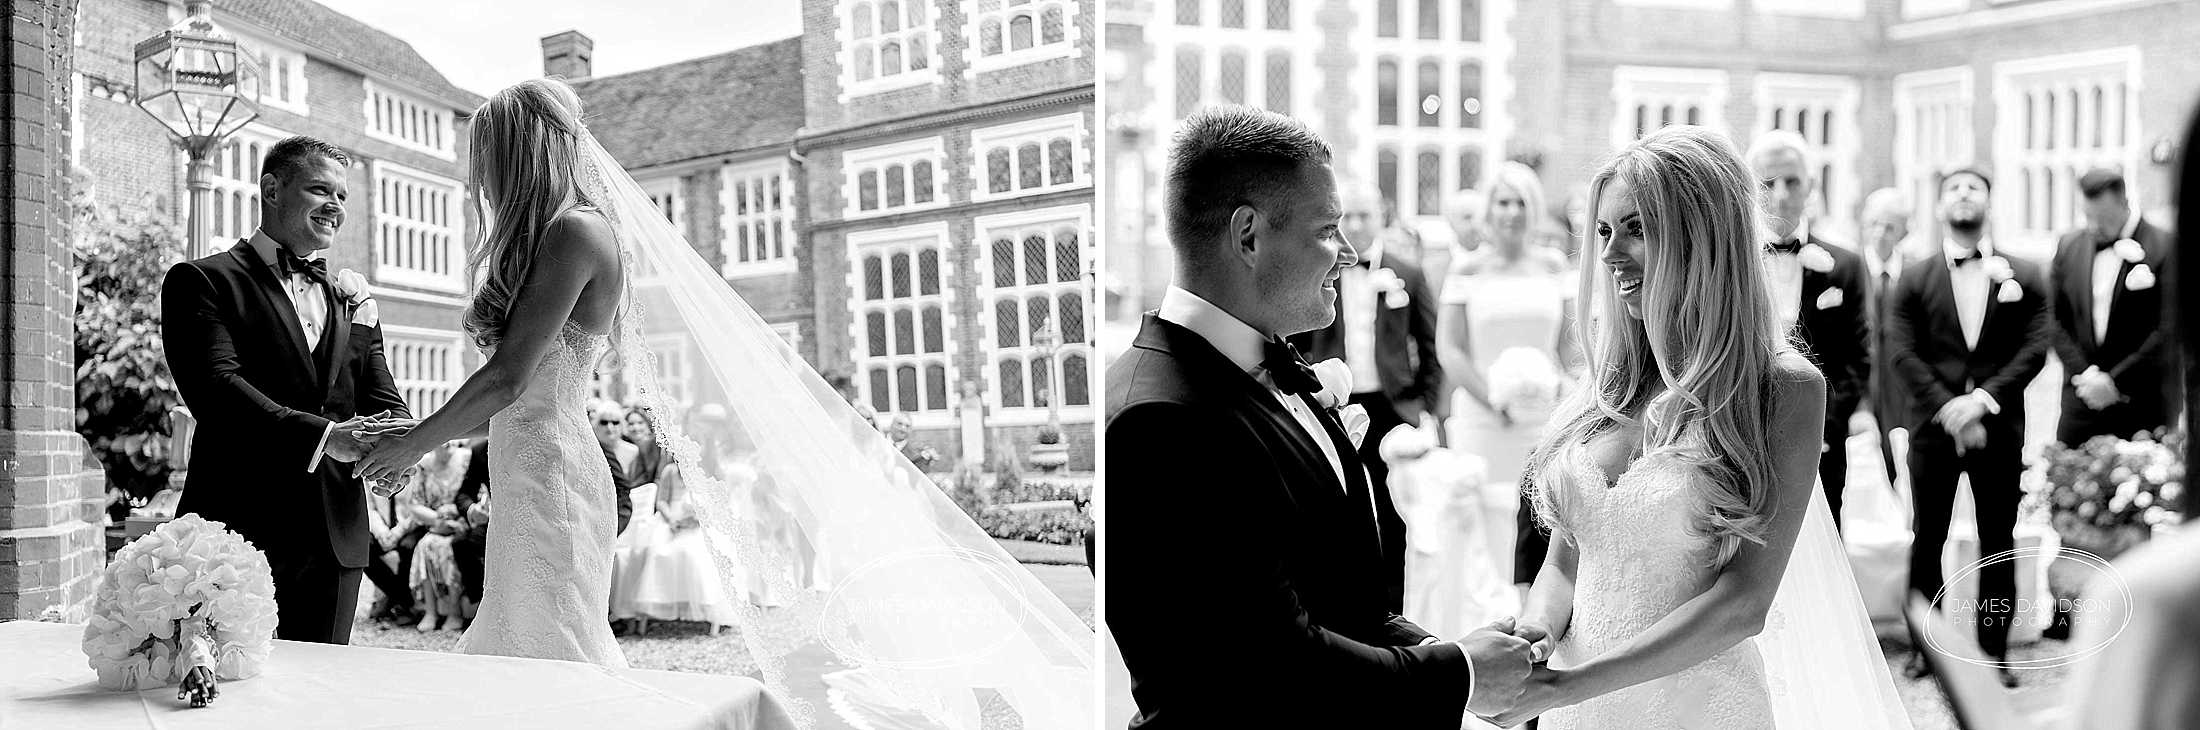 gosfield-hall-wedding-photography-051